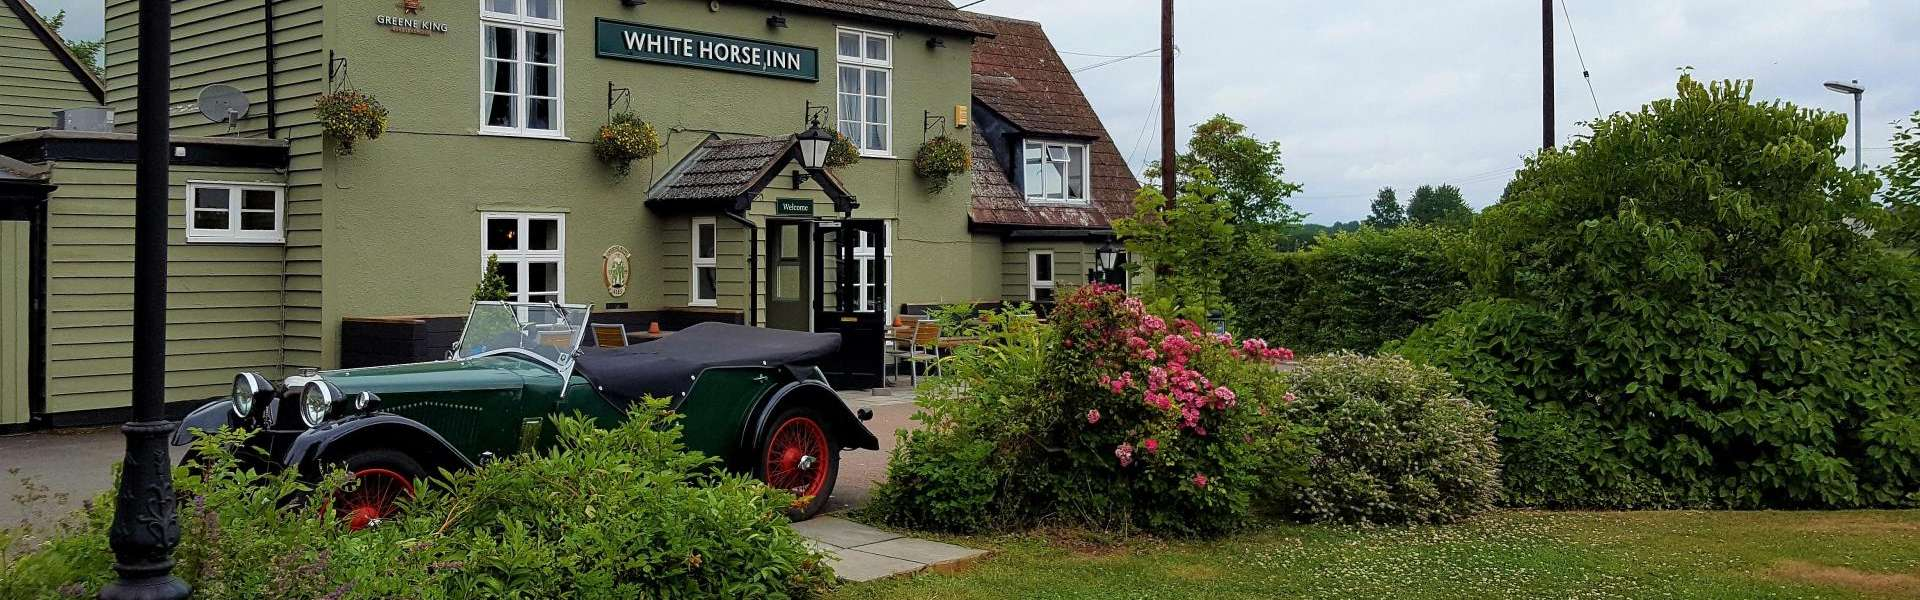 A car parked in front of a house at The White Horse Inn.